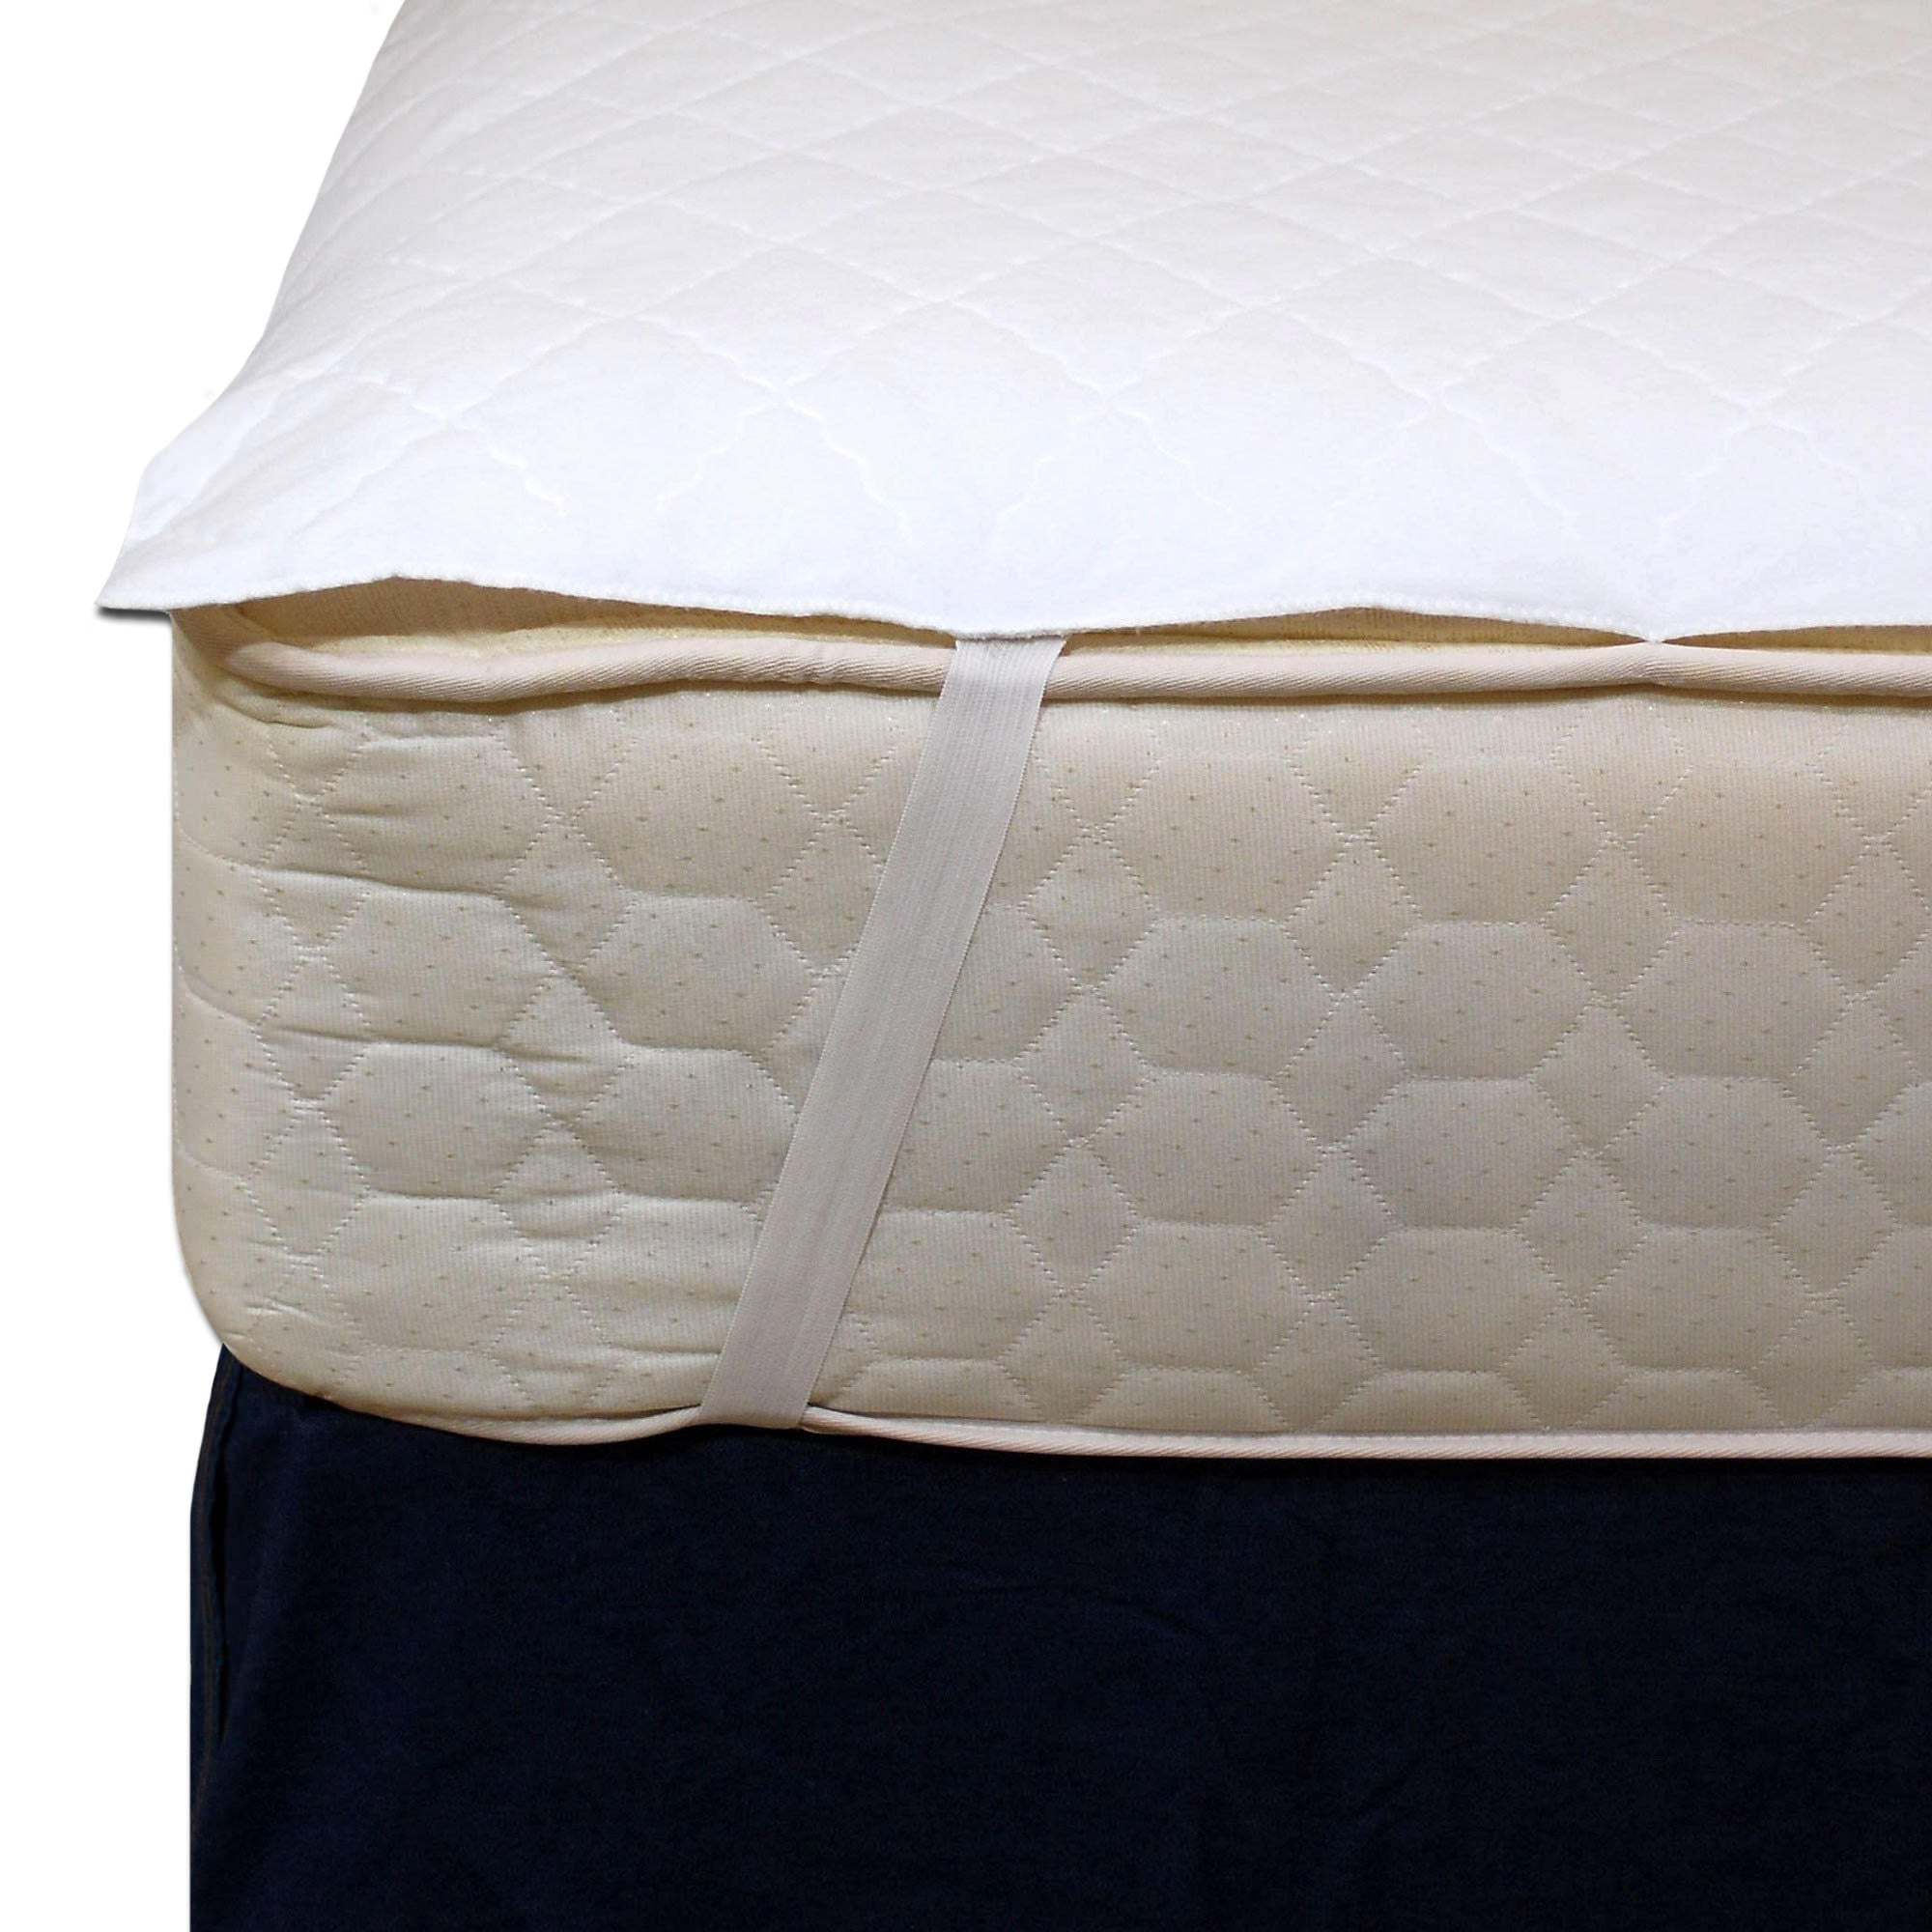 Waterproof Mattress Protector with Anchor Bands